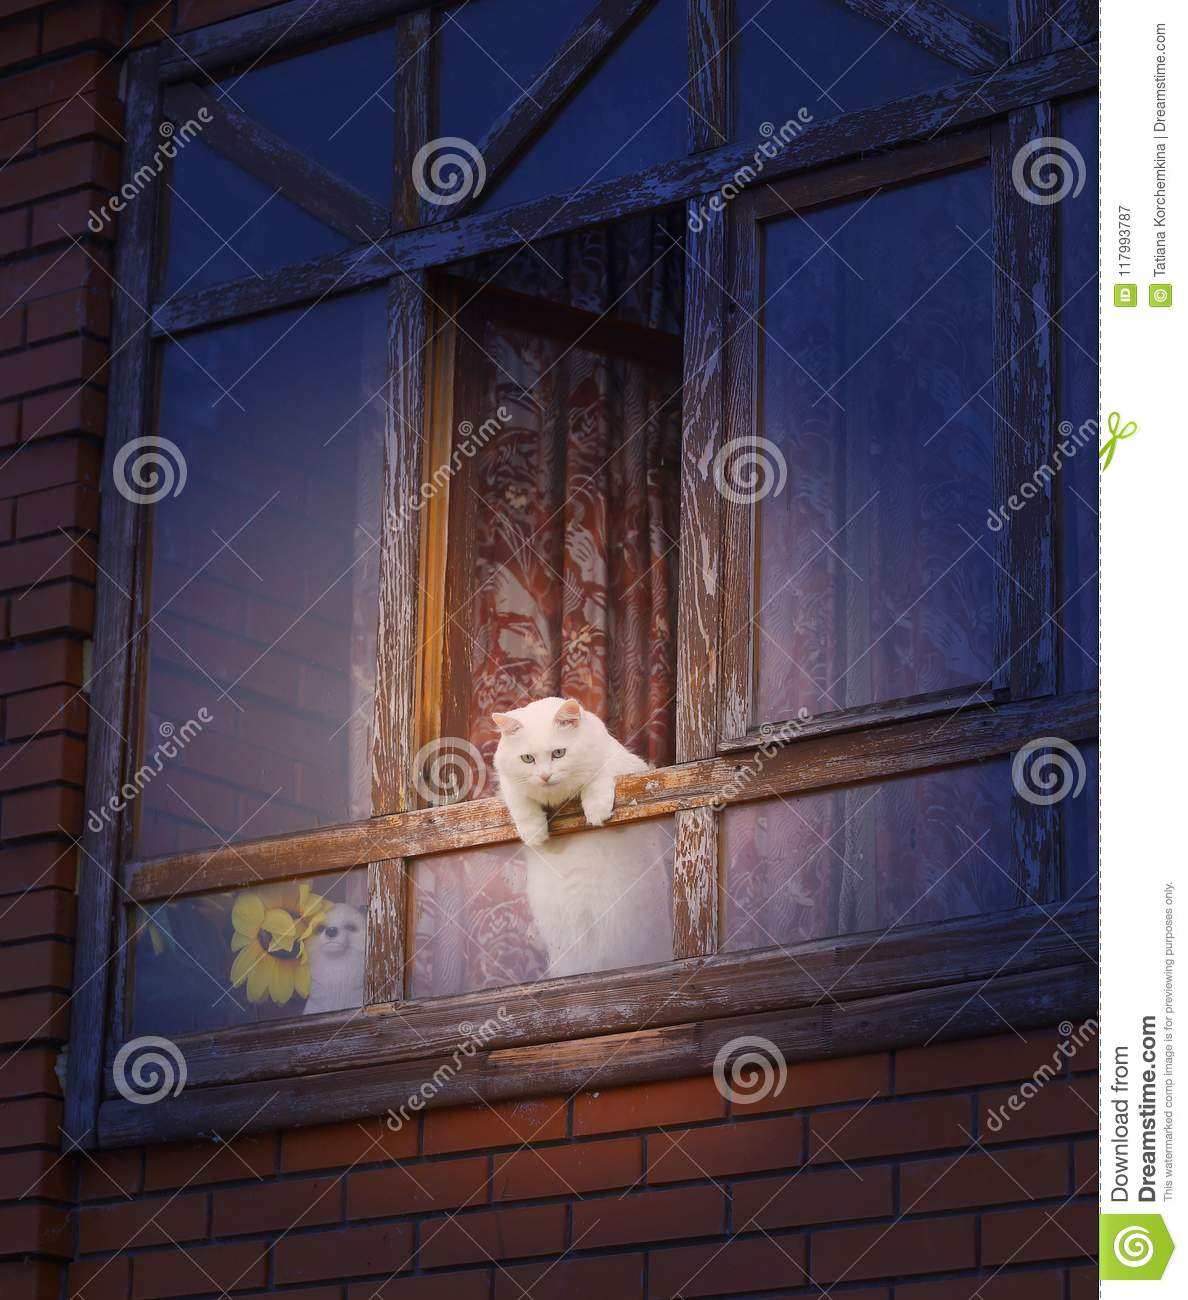 Photo of a white cat in the window